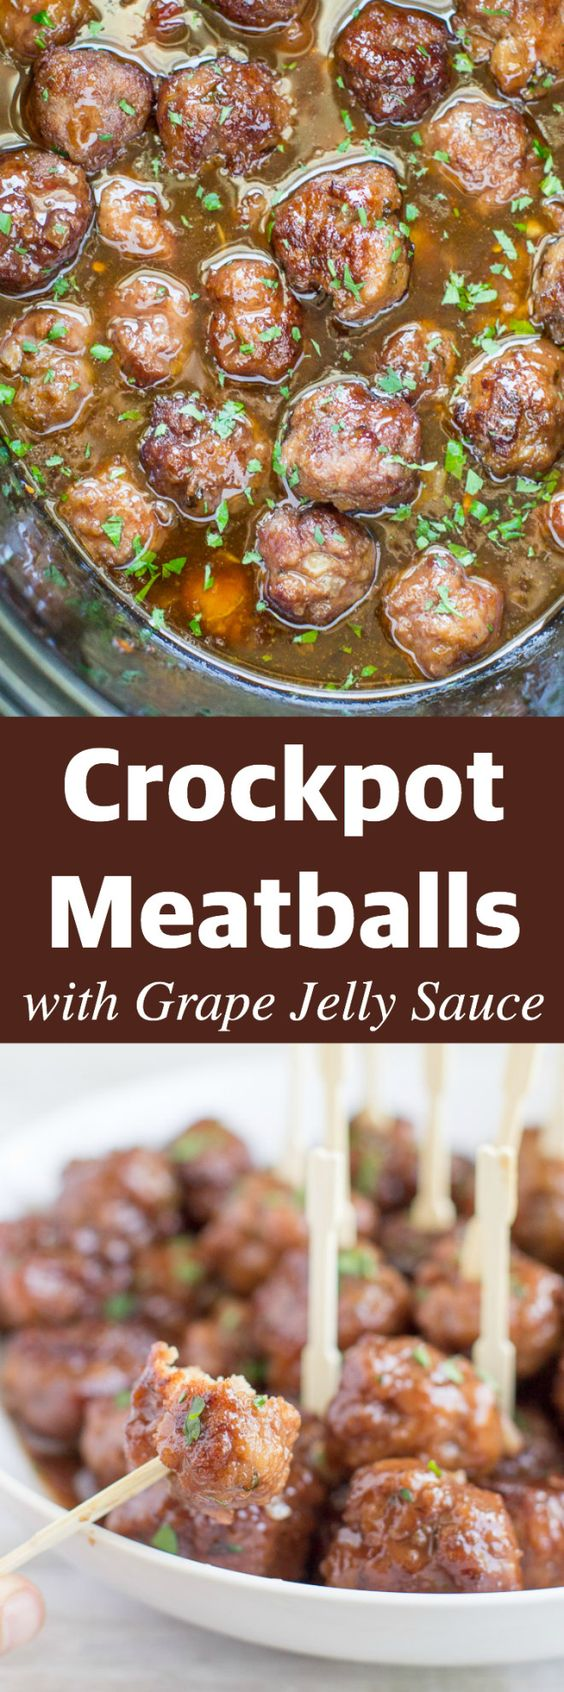 Homemade Crockpot Meatballs smothered in a sweet and tangy sauce made ...